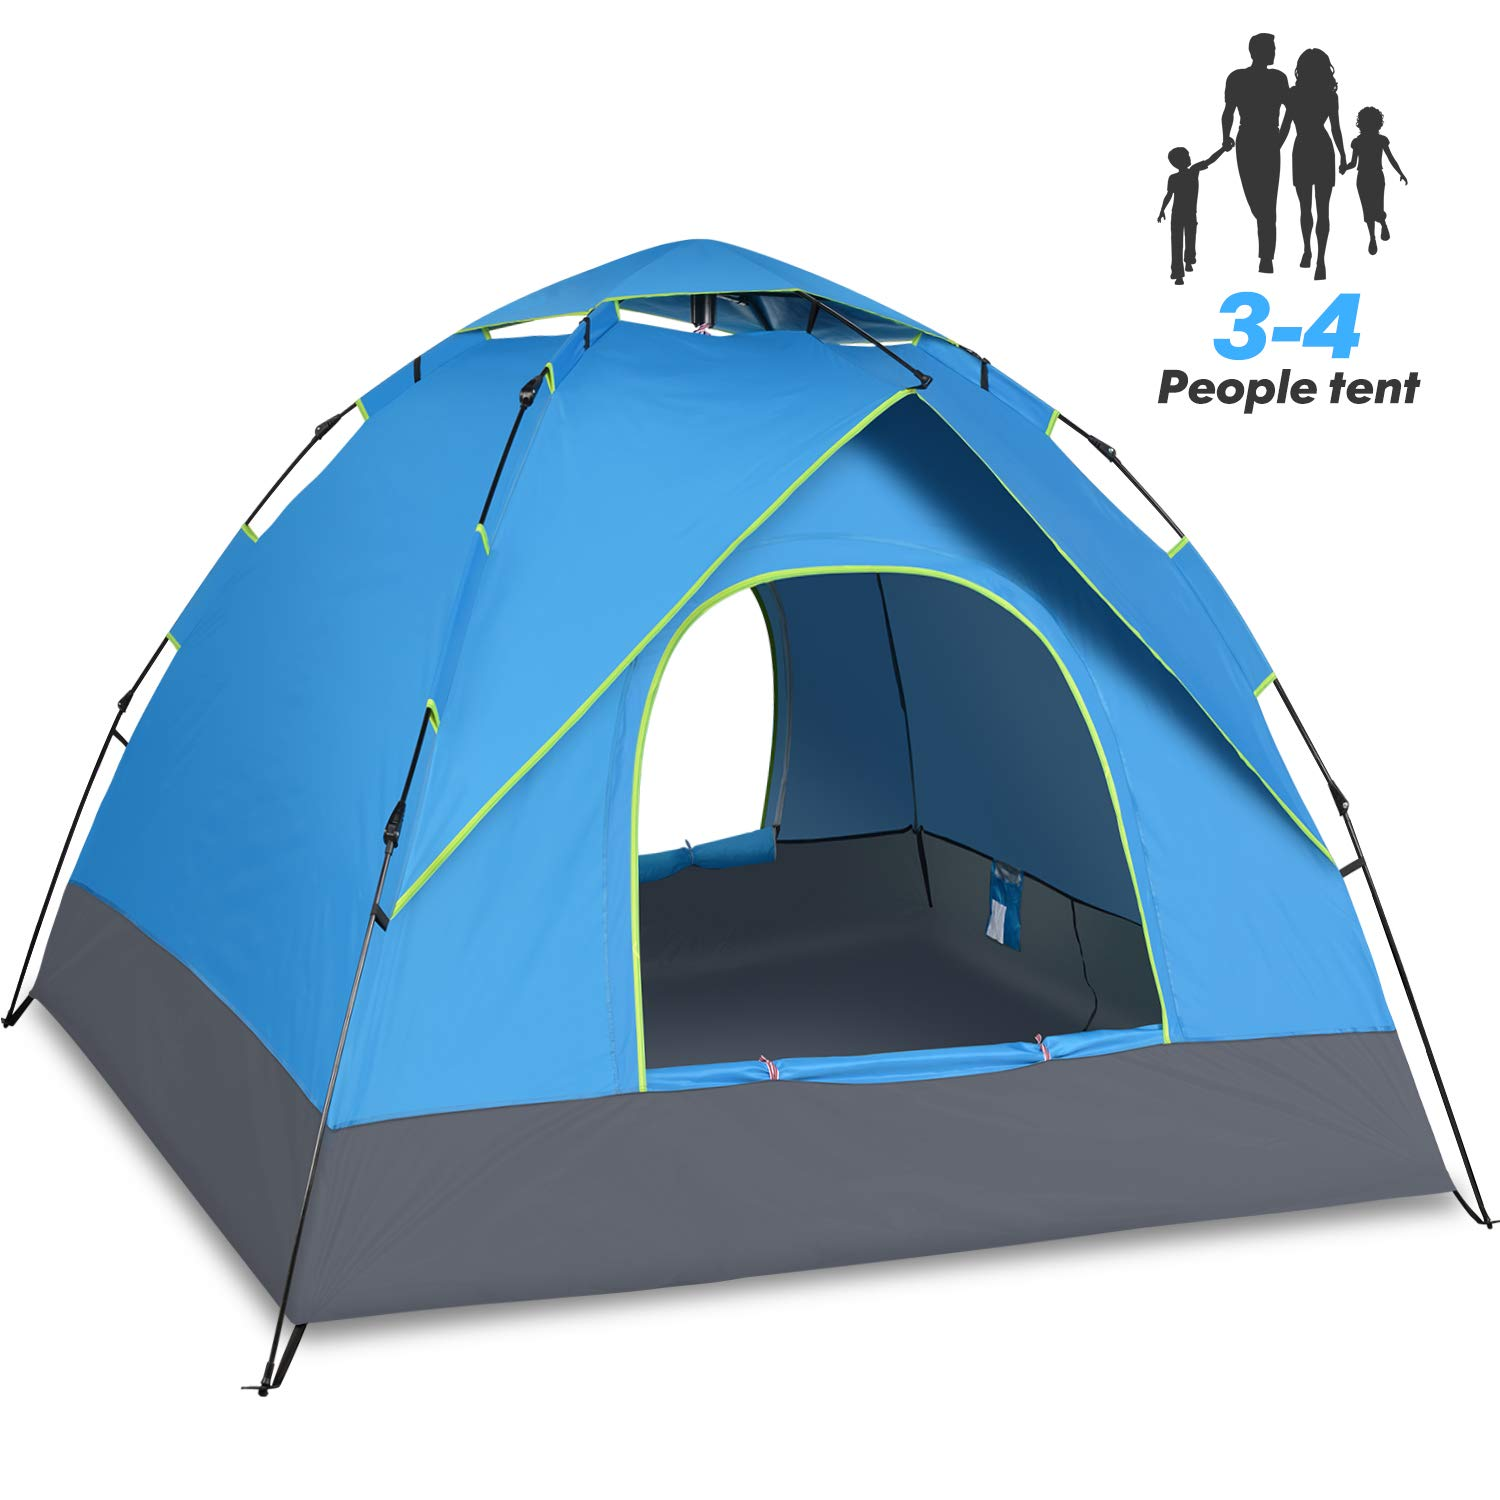 Amagoing 4 Person Tents for Camping with Instant Setup Double Layer Waterproof for 4 Seasons by Amagoing